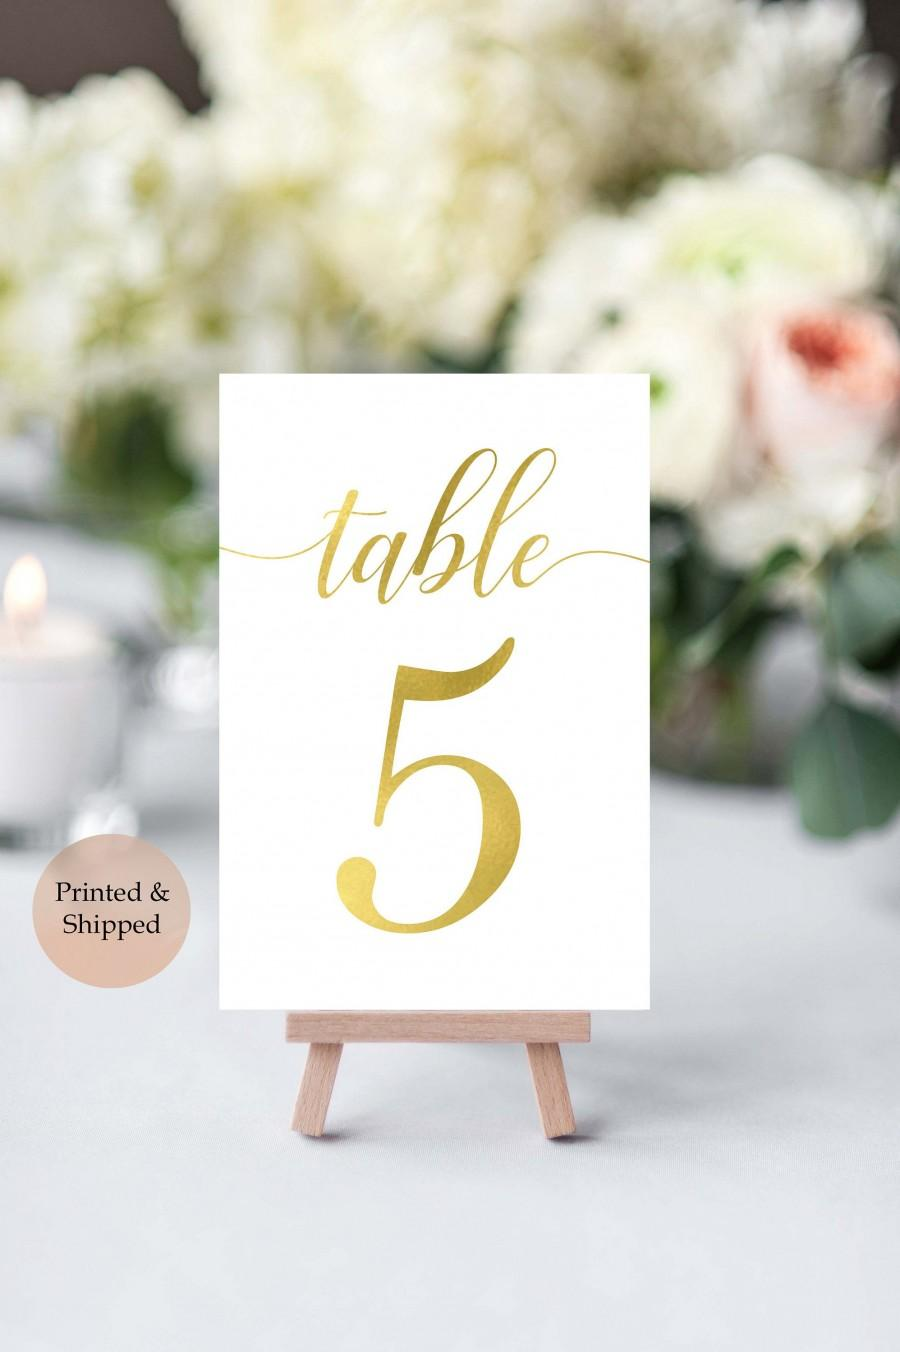 Hochzeit - Gold Table Numbers- Wedding Table Number- Wedding Table Decor- Rustic Table Number- Wedding Number Signs- Table Number Cards- Gold Numbers